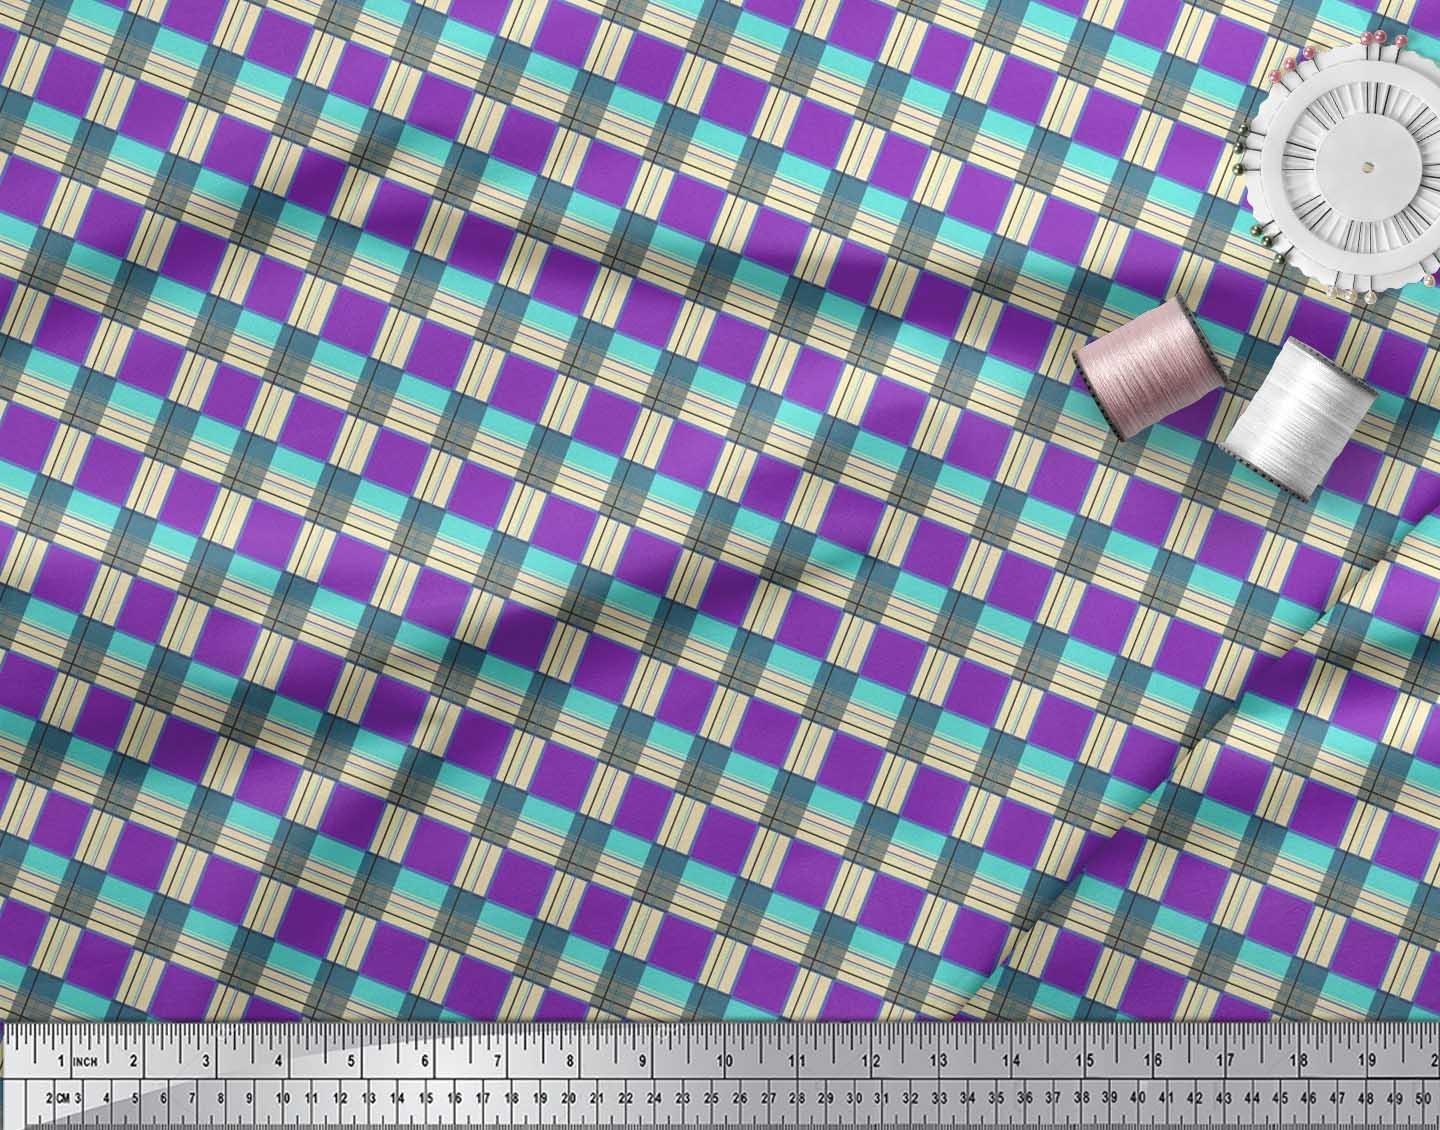 Soimoi-Cotton-Poplin-Fabric-Gingham-Check-Printed-Craft-Fabric-by-gIE thumbnail 3